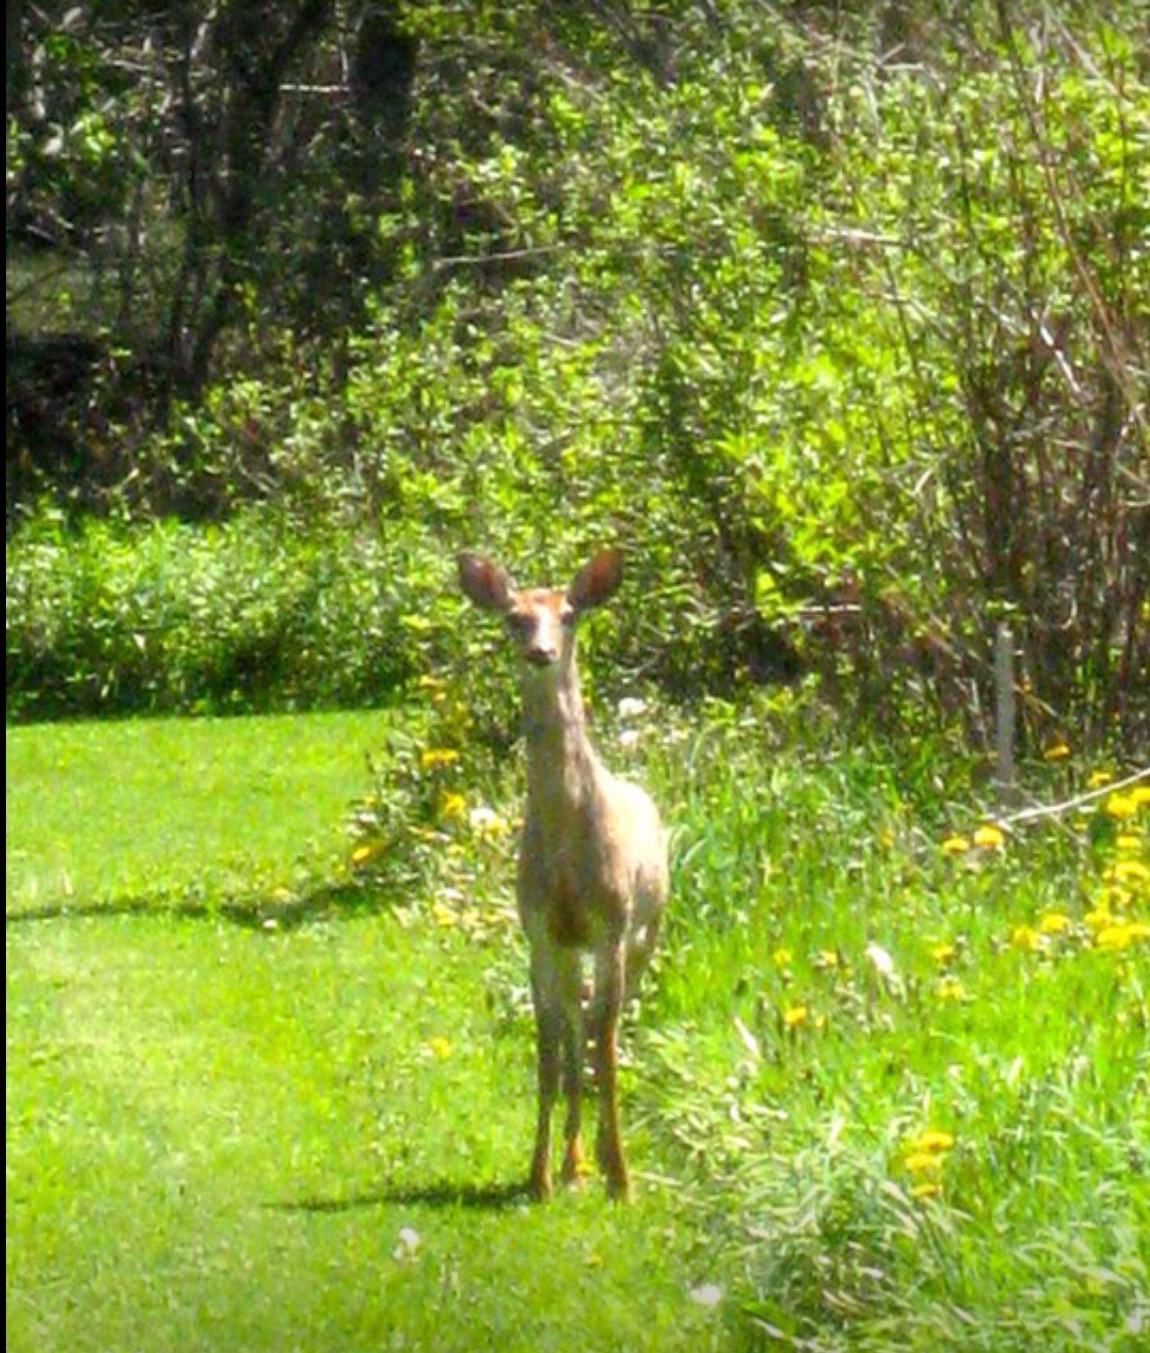 A young deer likes our trails.